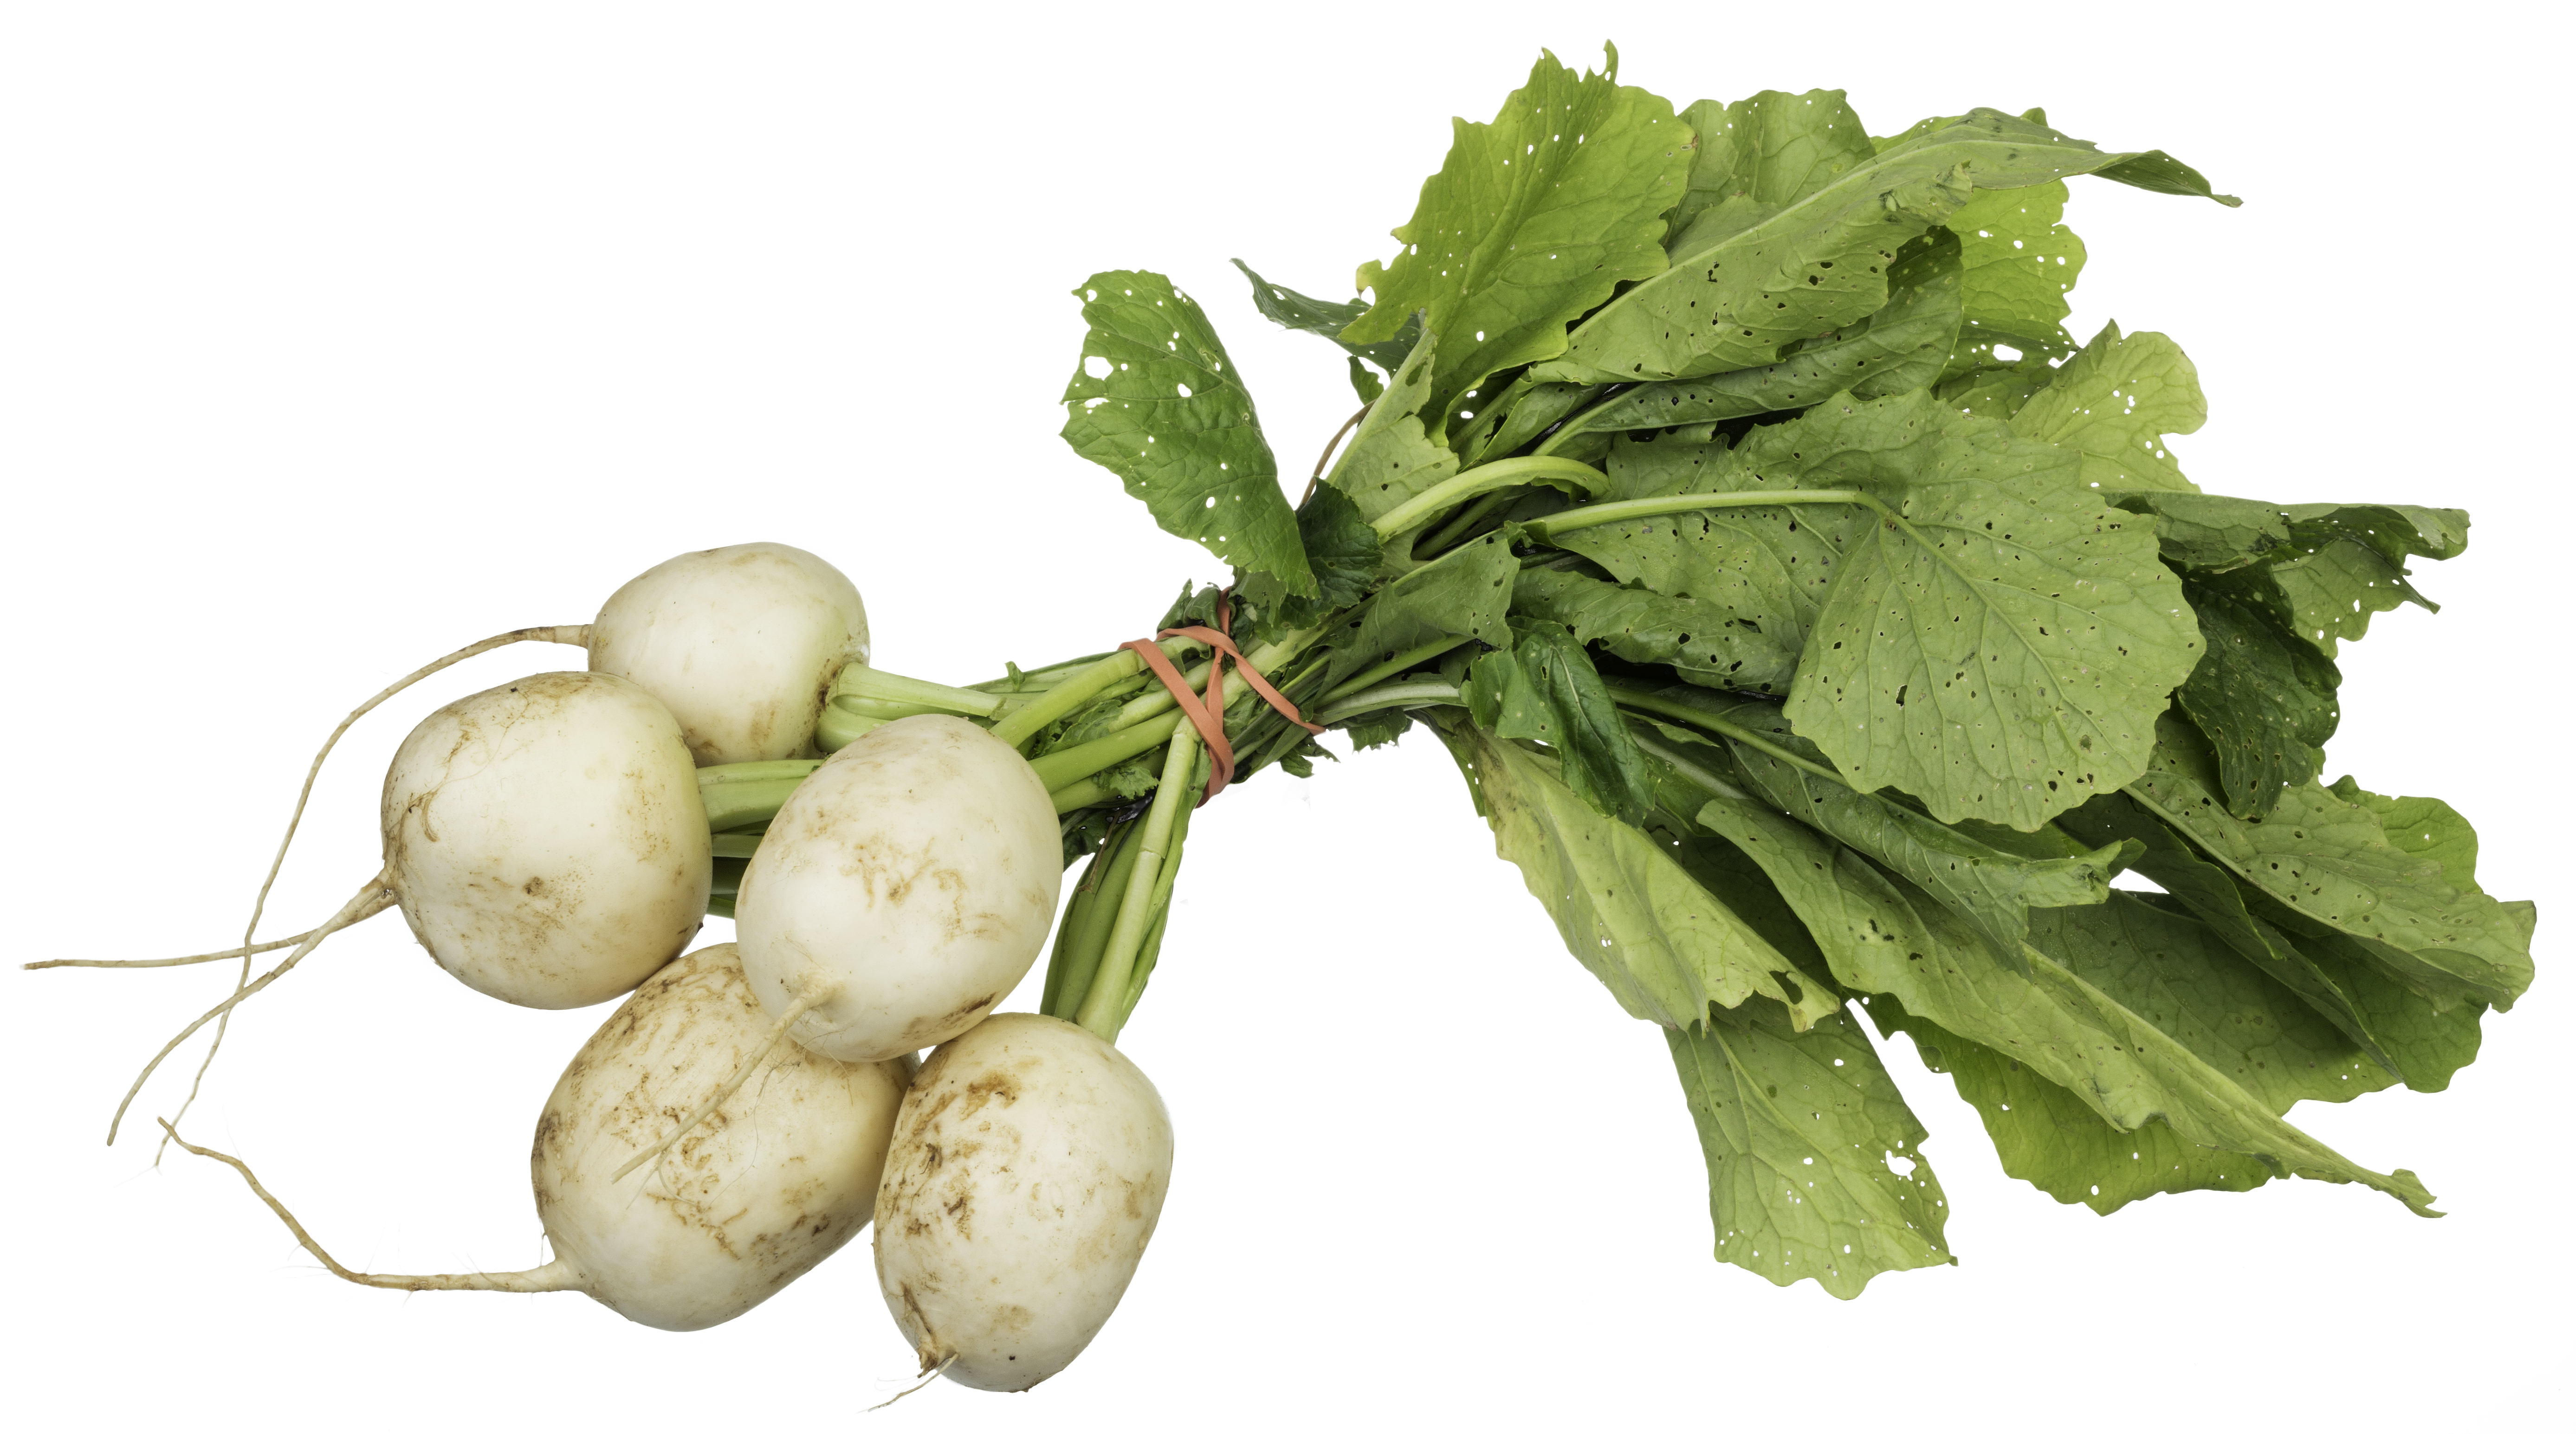 Benefits of turnips